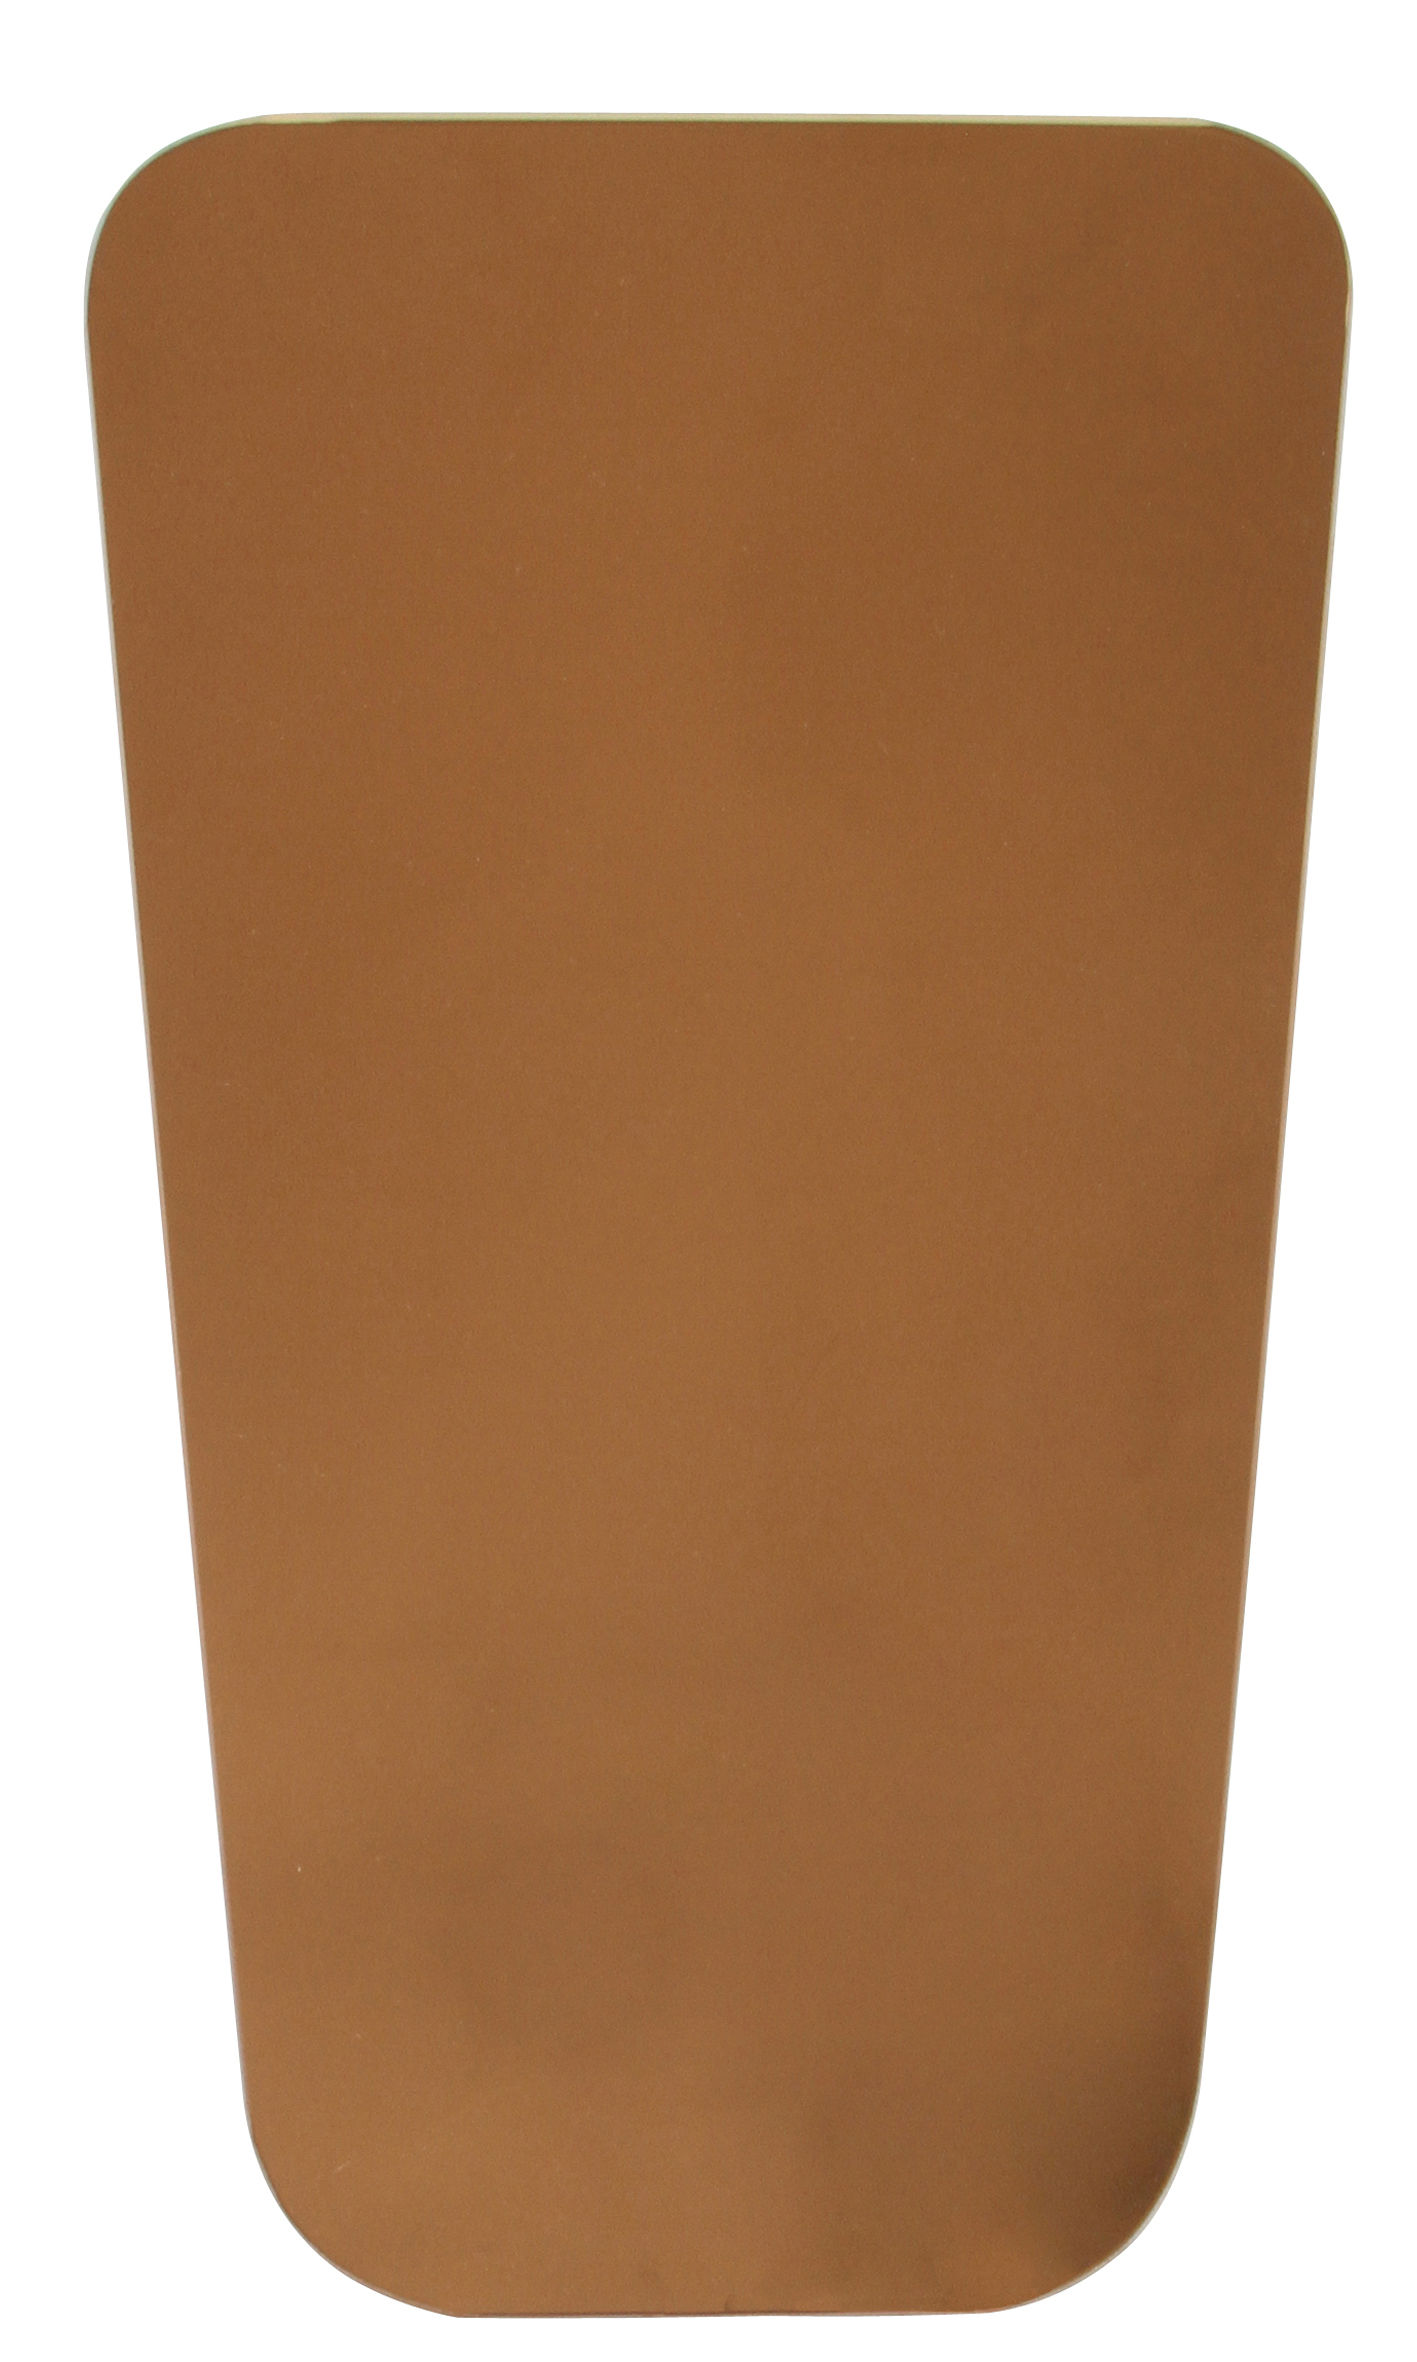 Decoration - Mirrors - Wall mirror - Rectangular - 45 x 25 cm by & klevering - Rectangular - Copper - Glass